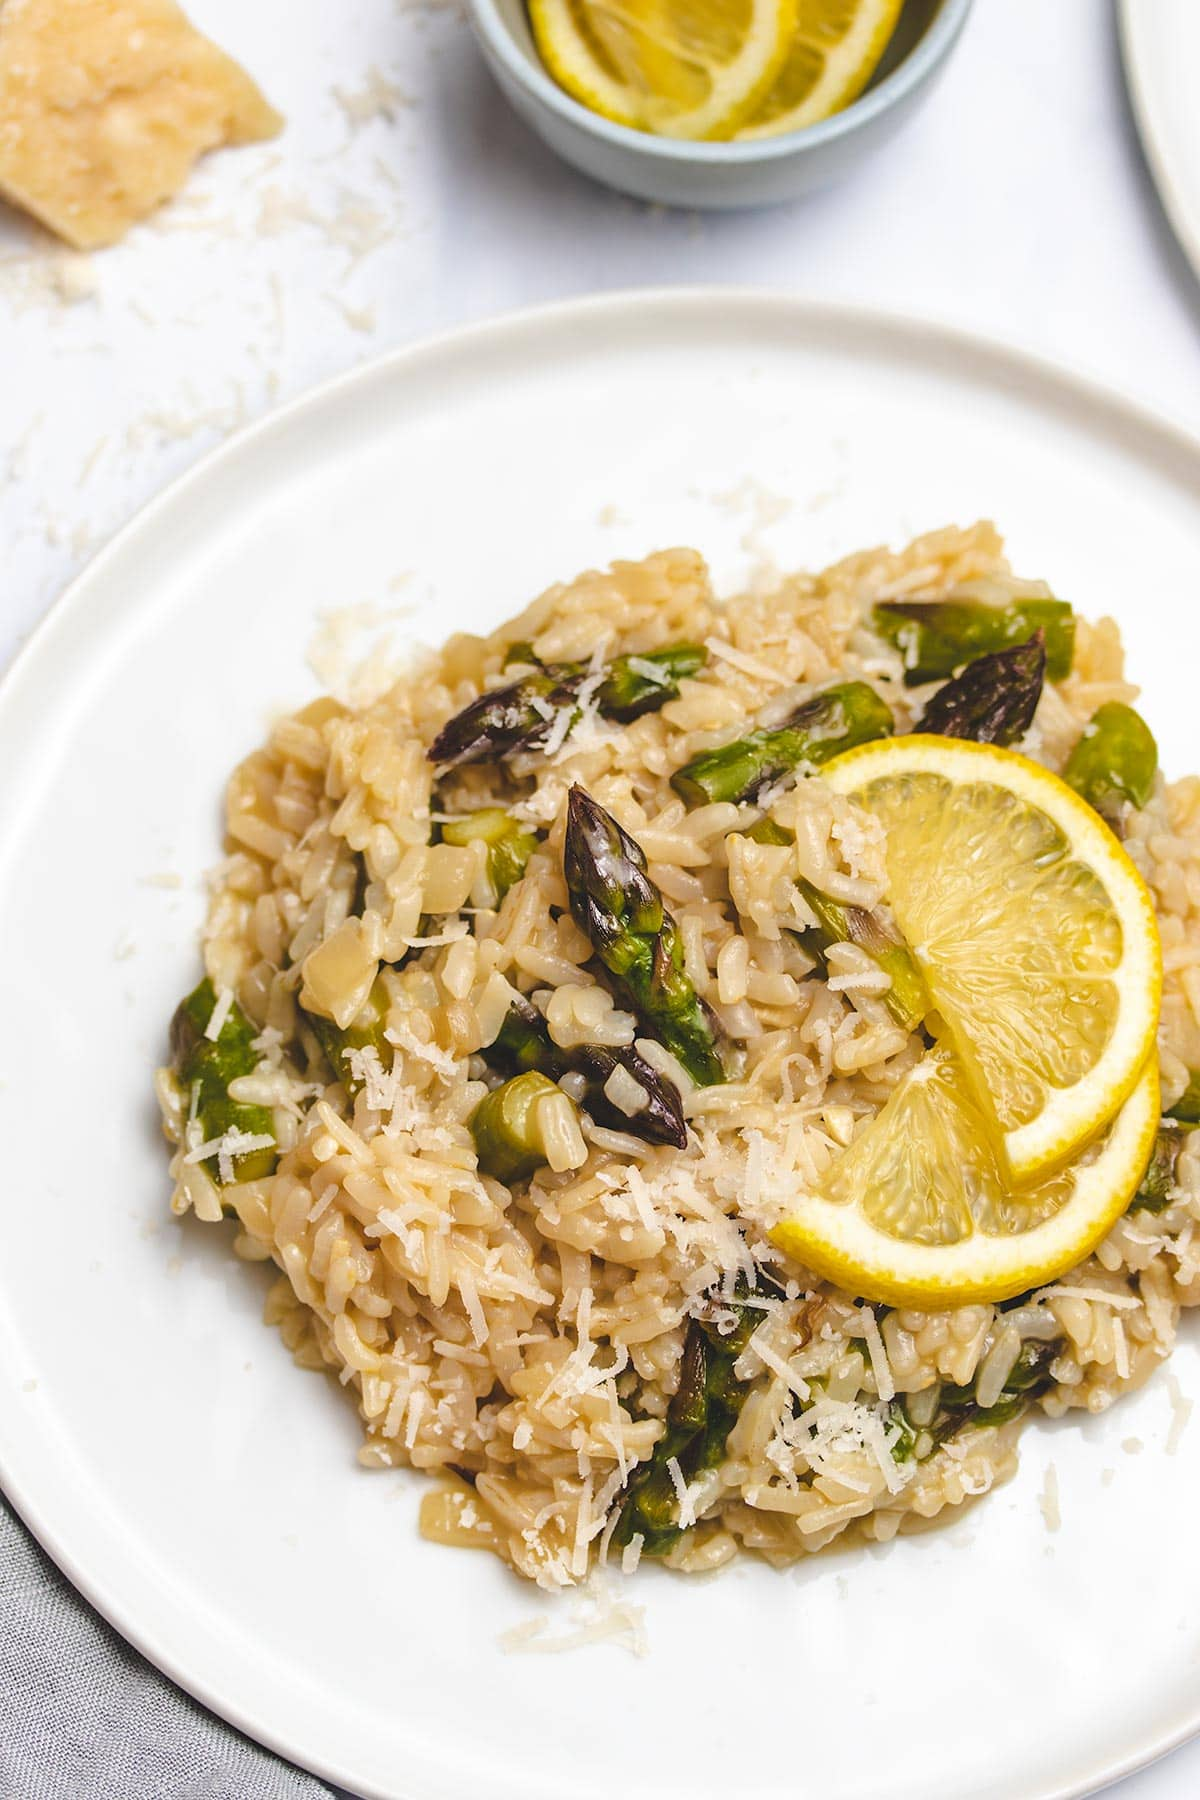 lemon asparagus risotto on a white plate garnished with lemon slices and parmesan cheese